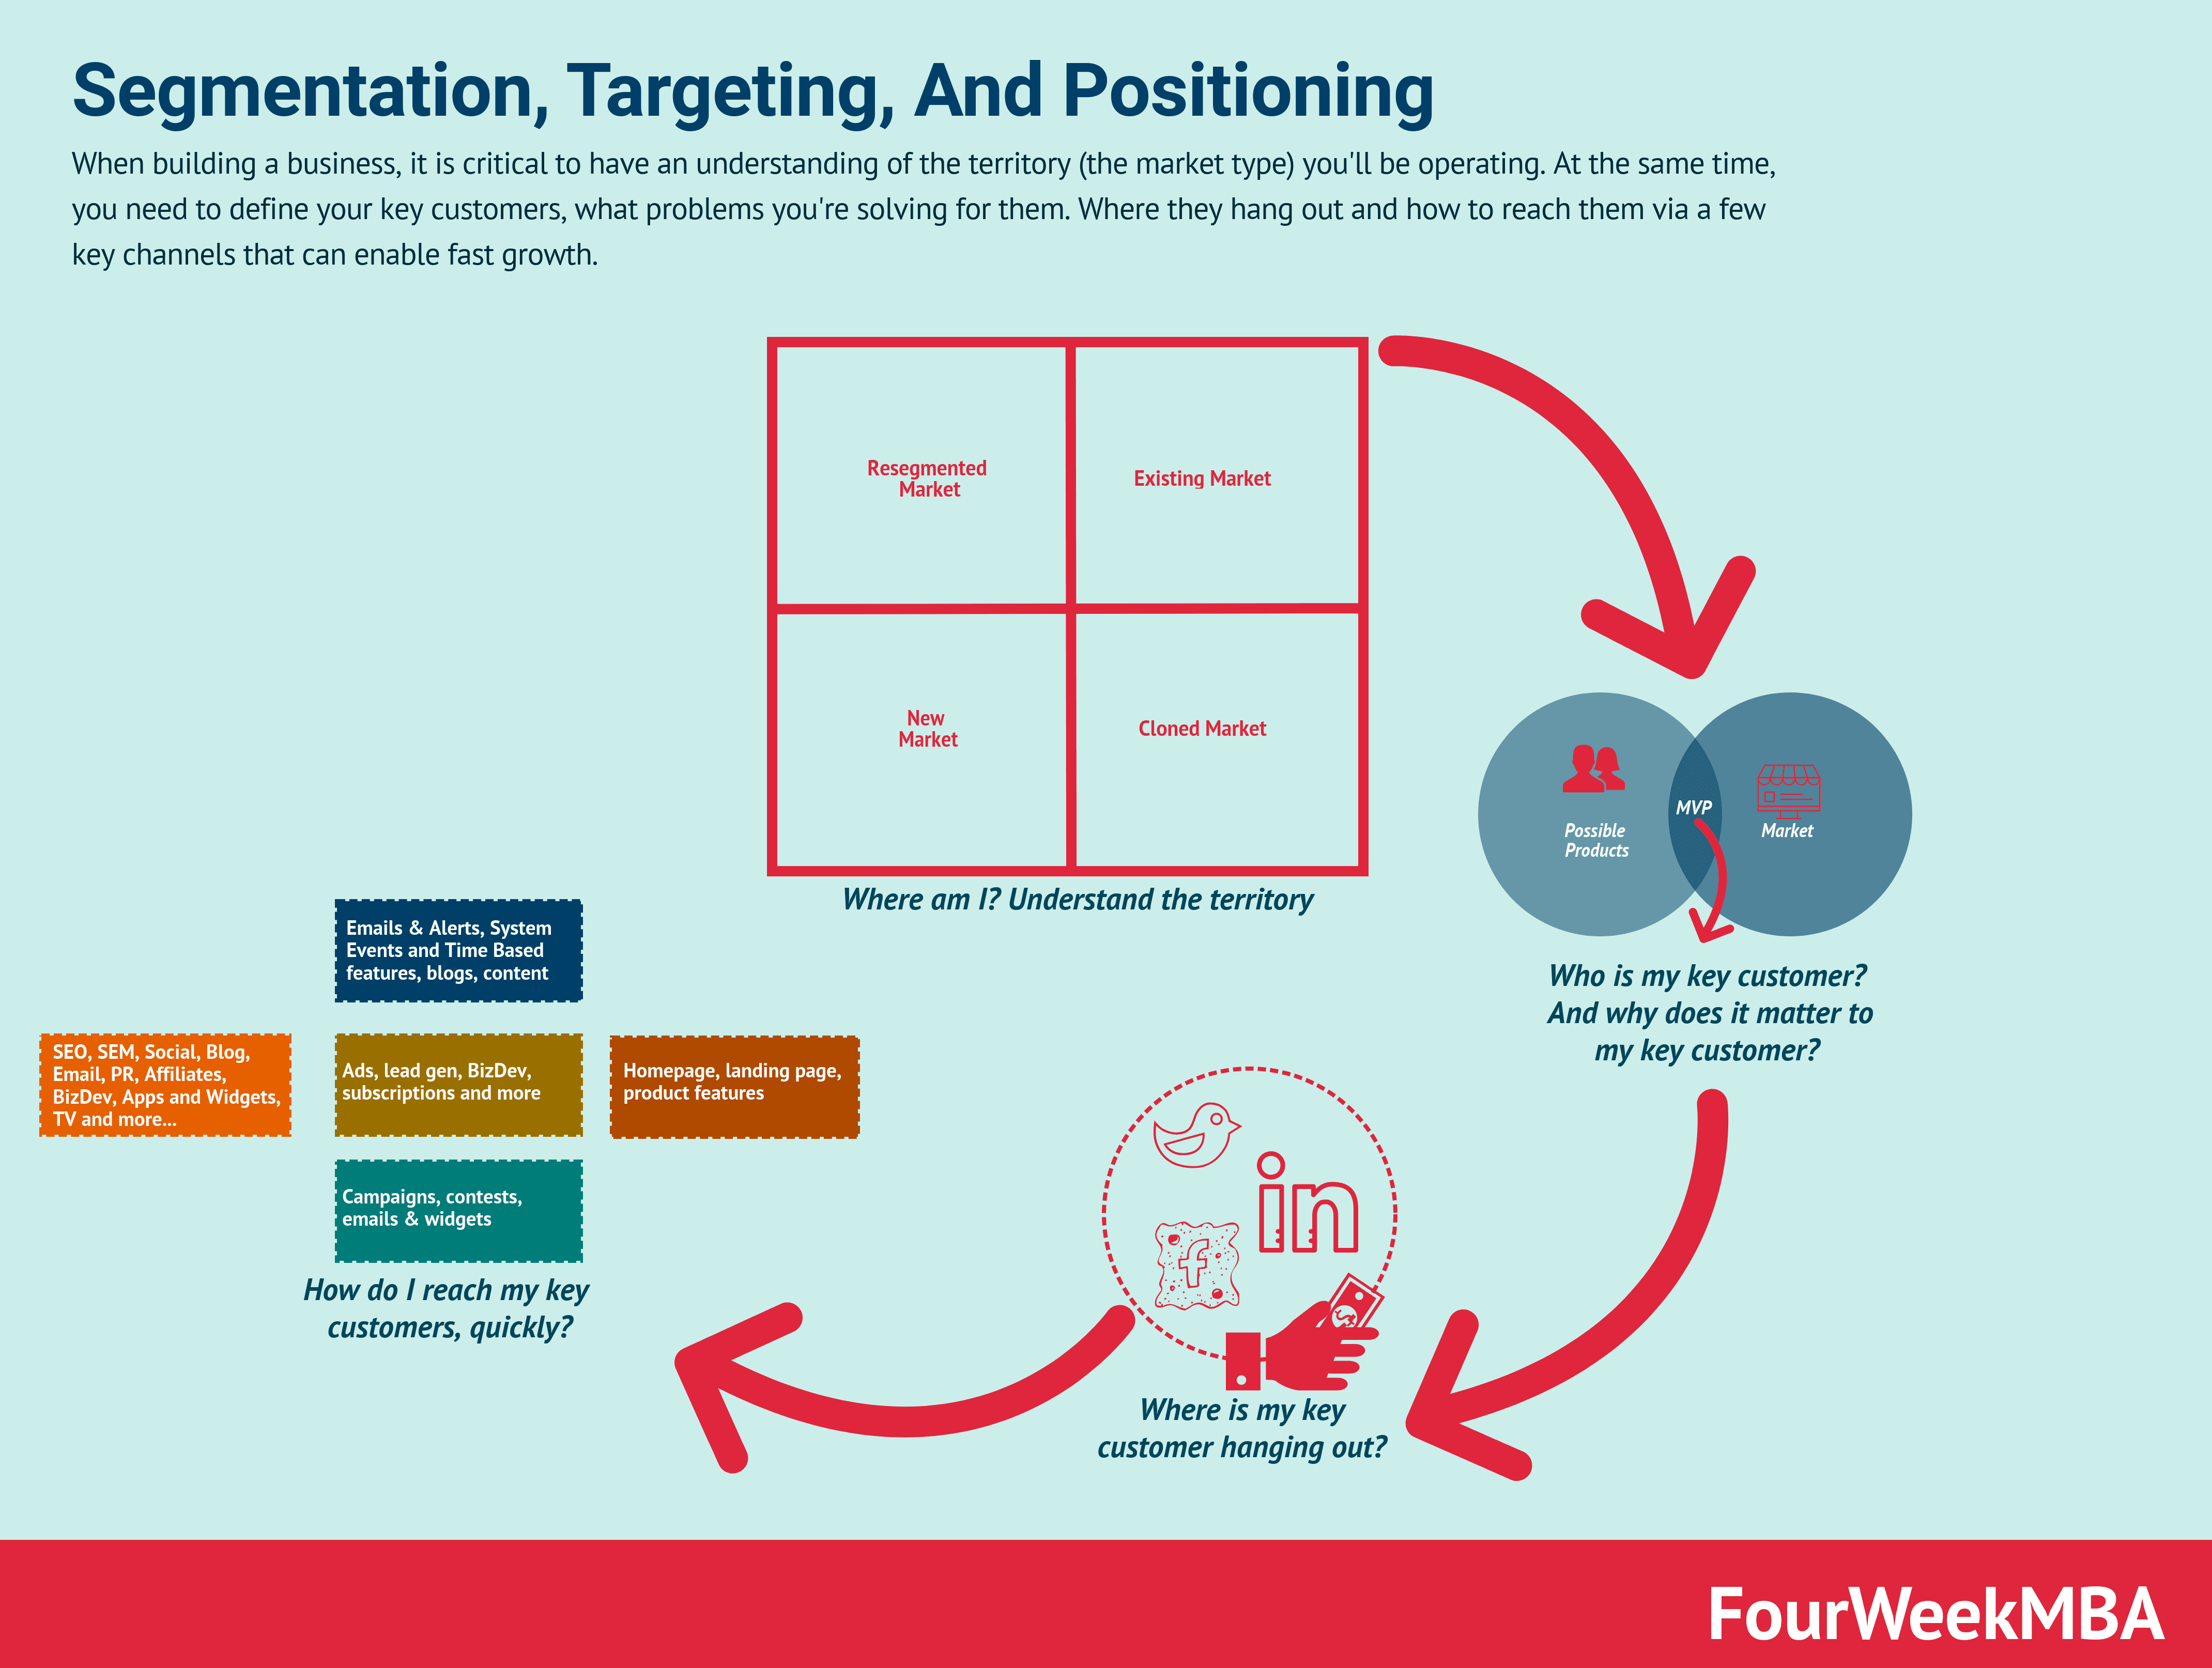 How To Use Segmentation, Targeting, And Positioning To Grow Your Business